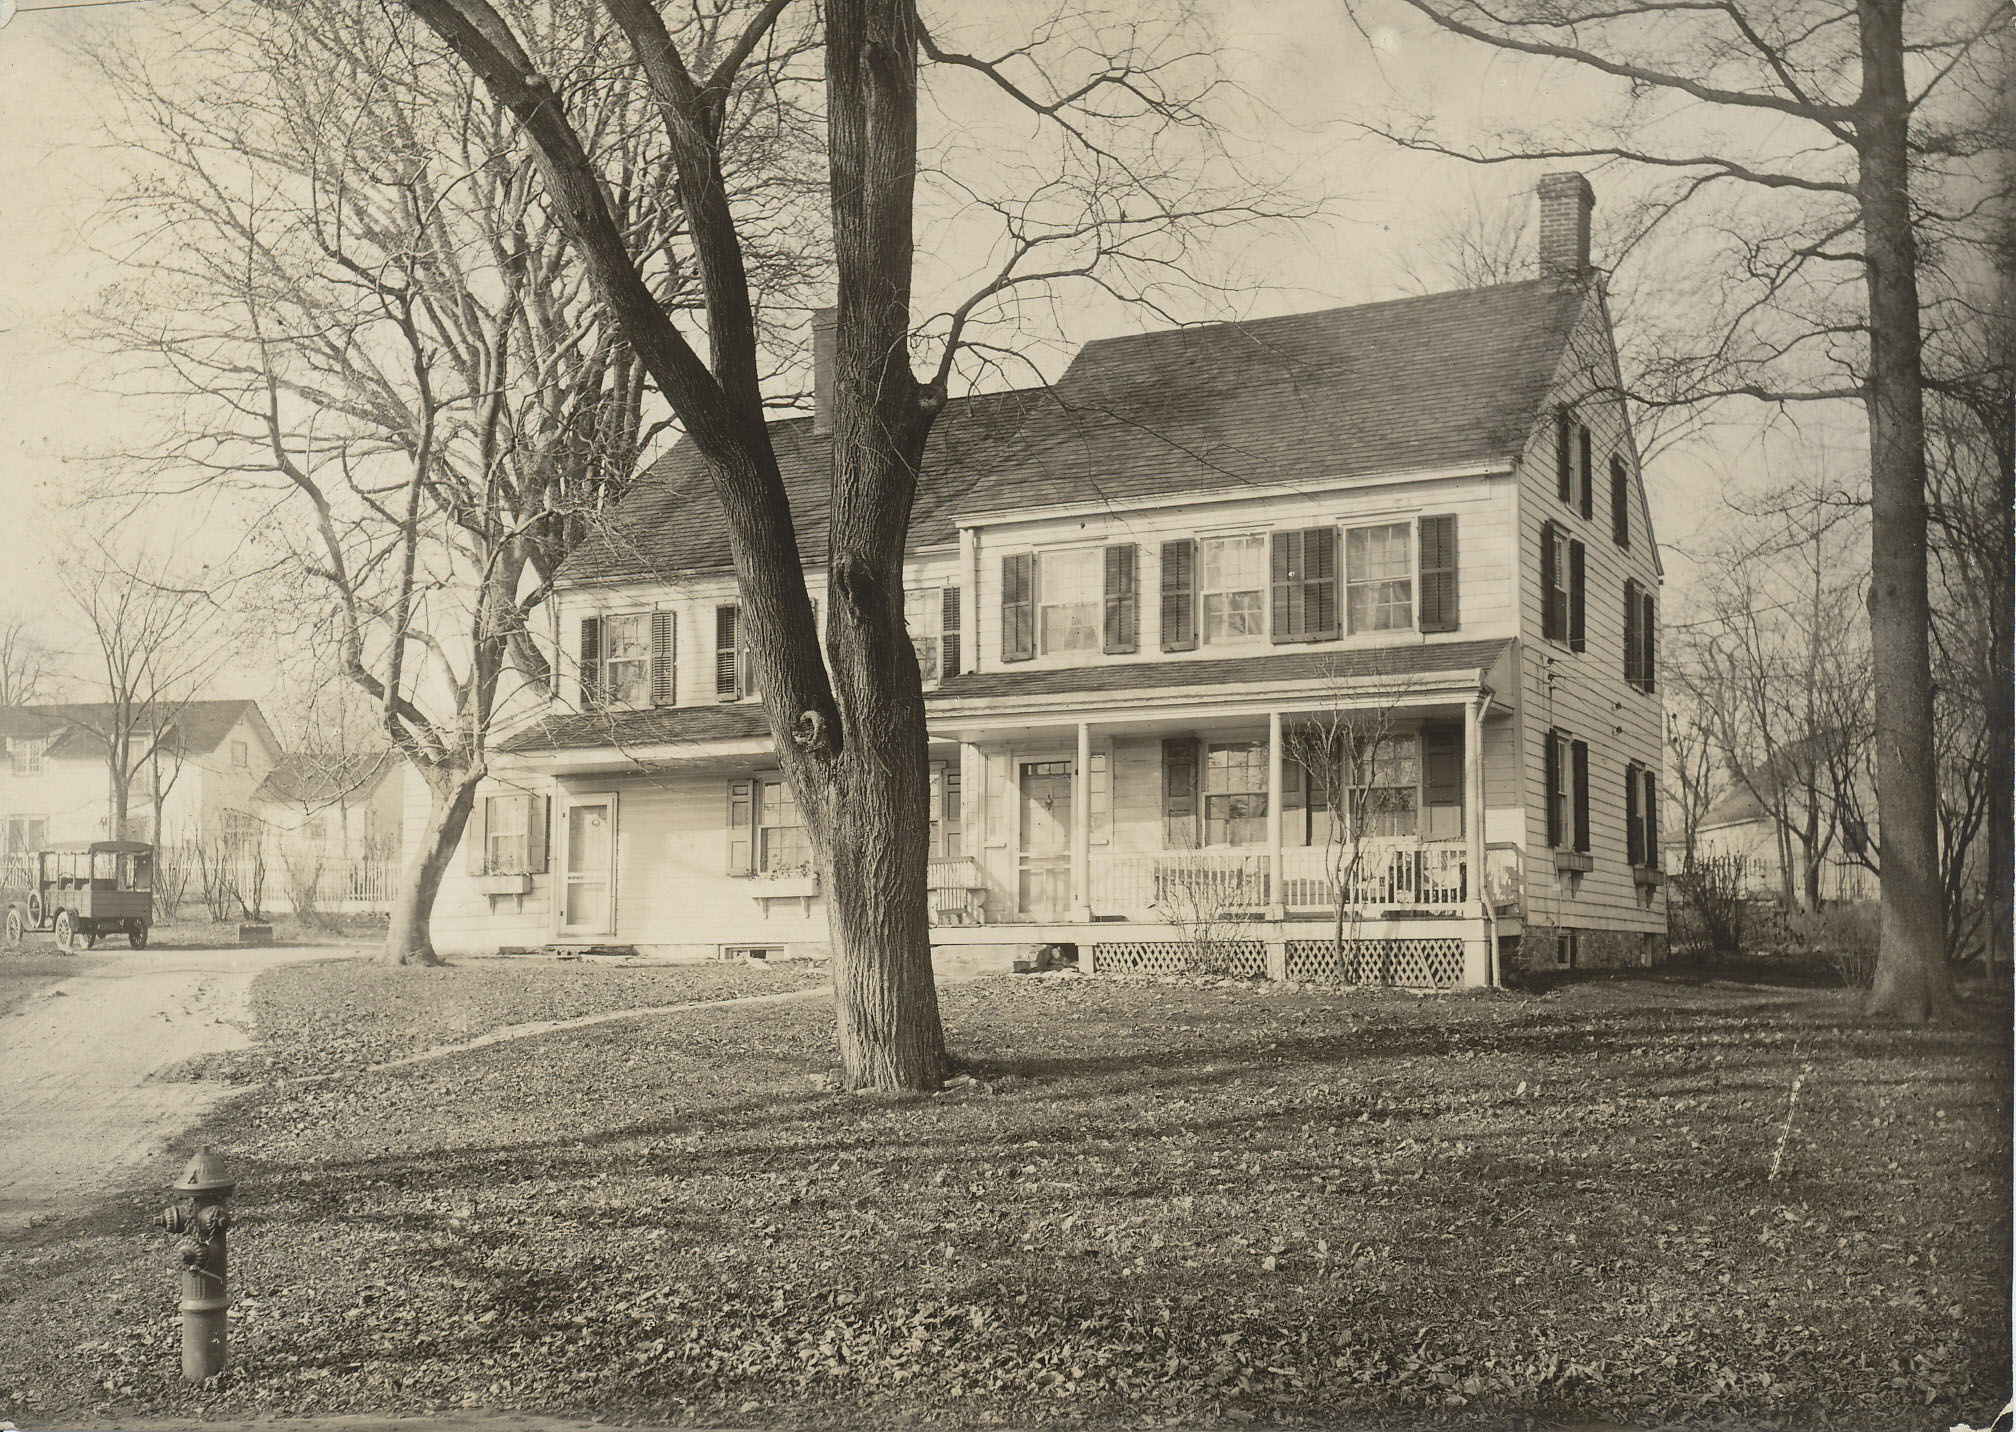 Tompkins-McCabe House, date unknown.